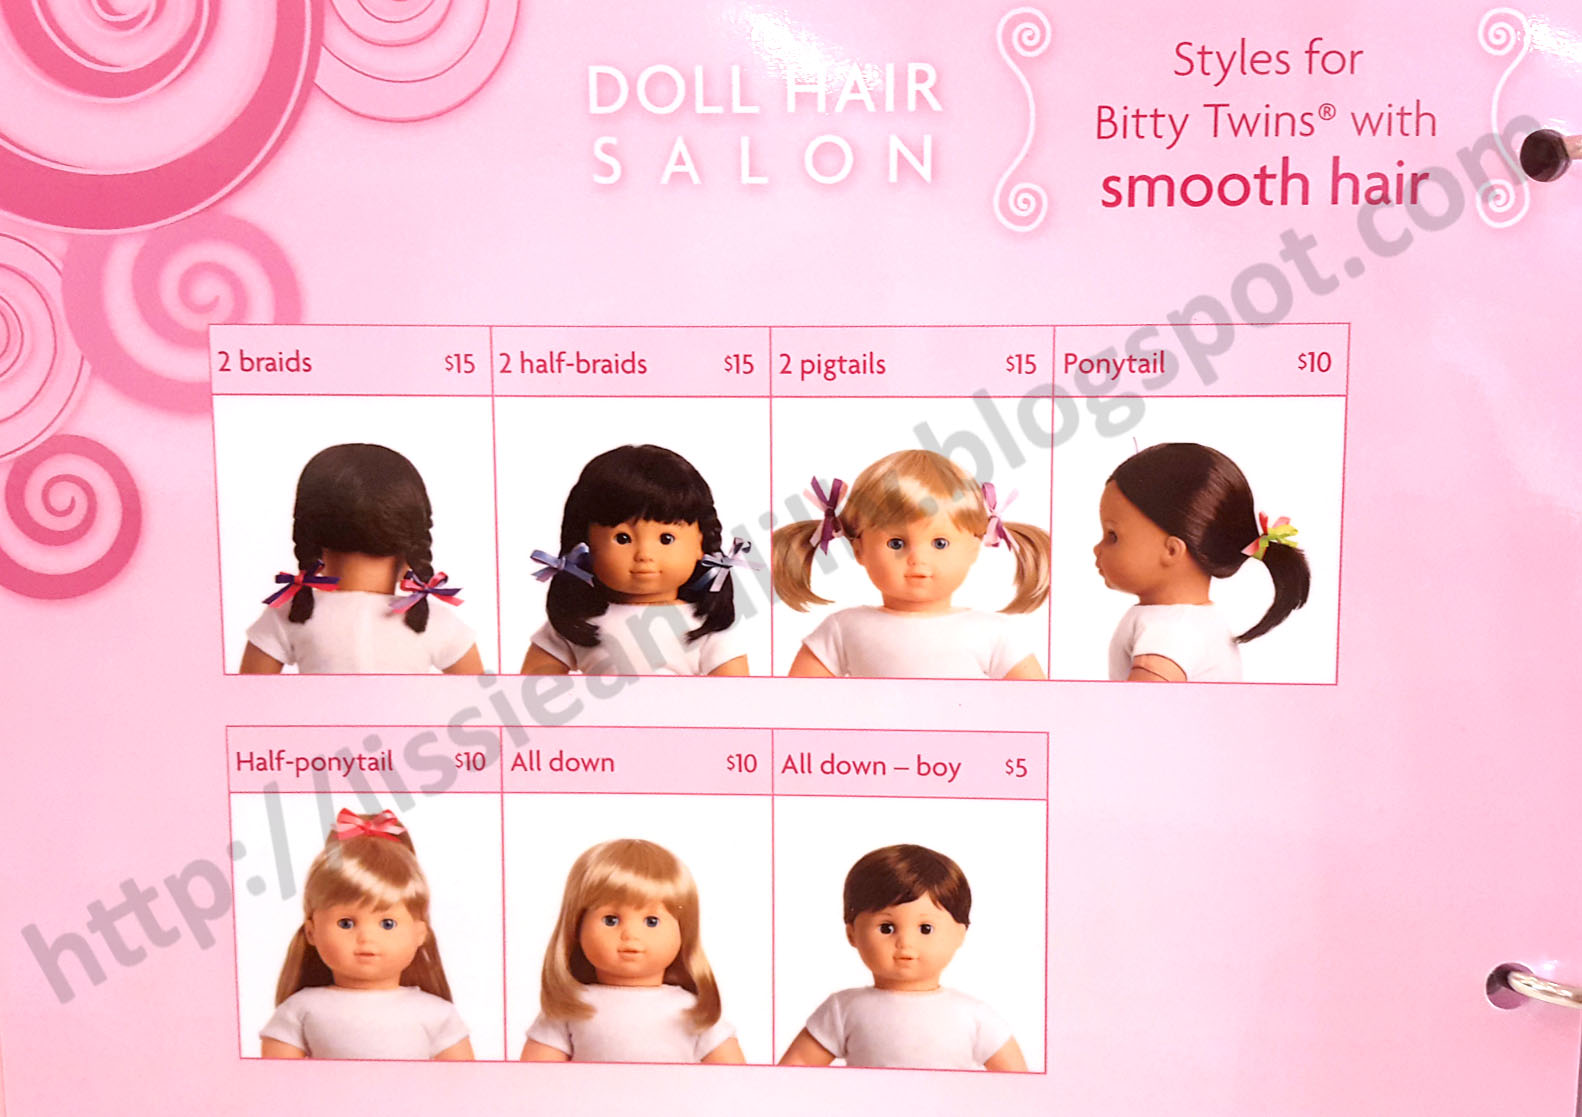 american girl hair salon styles lissie amp lilly ag salon hairstyles 1991 | WM%2B20150521 122340